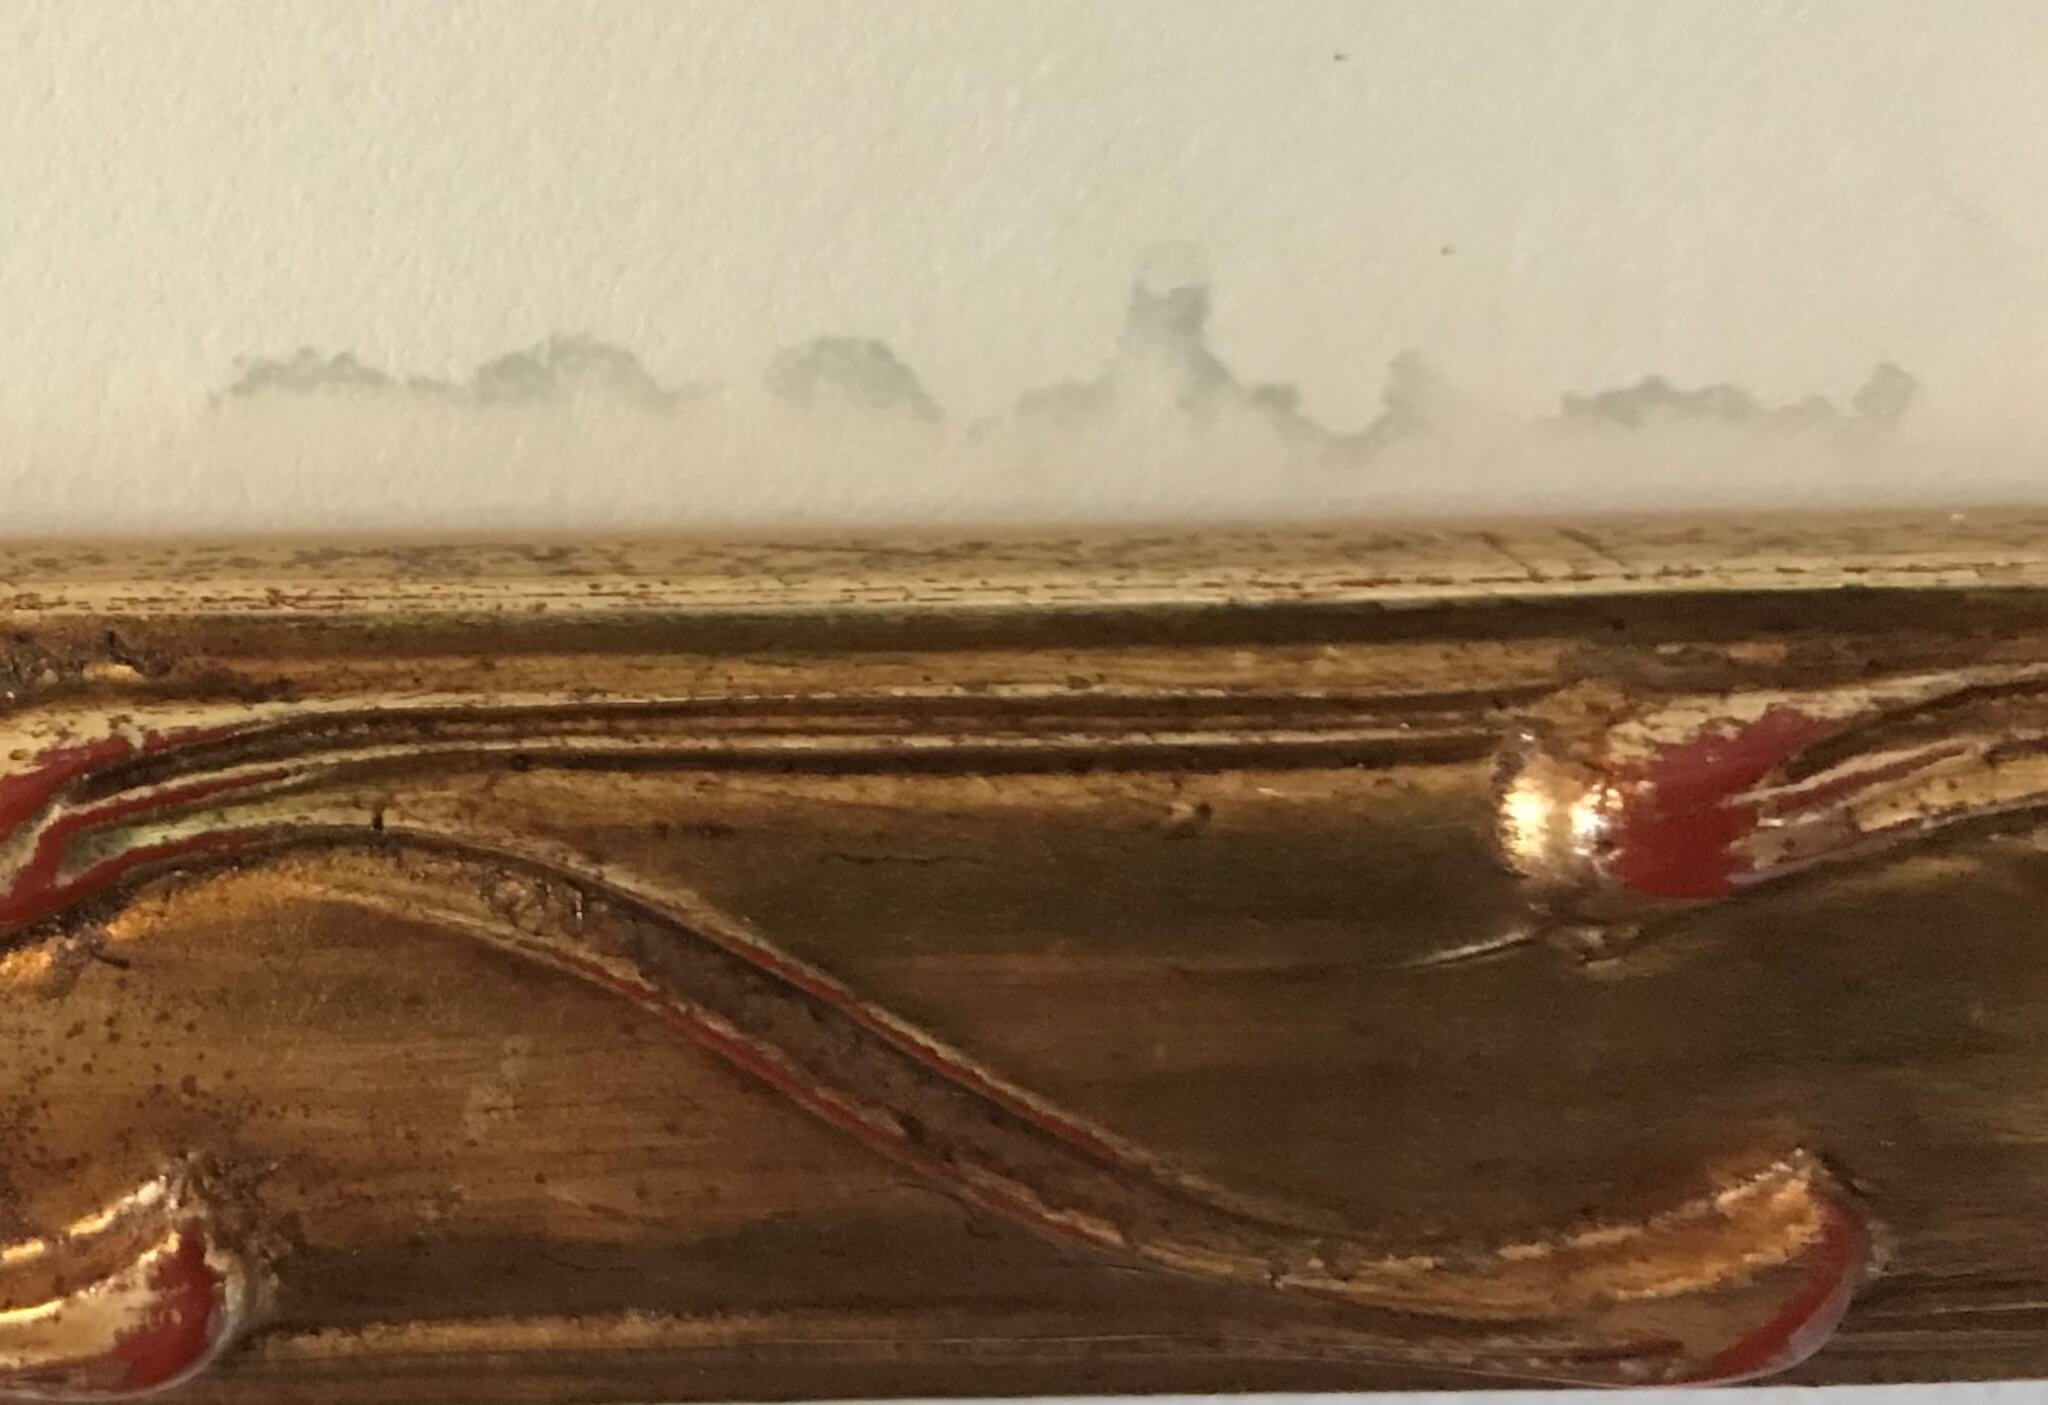 Damage caused by seepage from glass cleaner on a framed piece. Photograph restoration Heirloom restoration Archival picture framing Custom picture framing chicago Archival matting Museum framing services